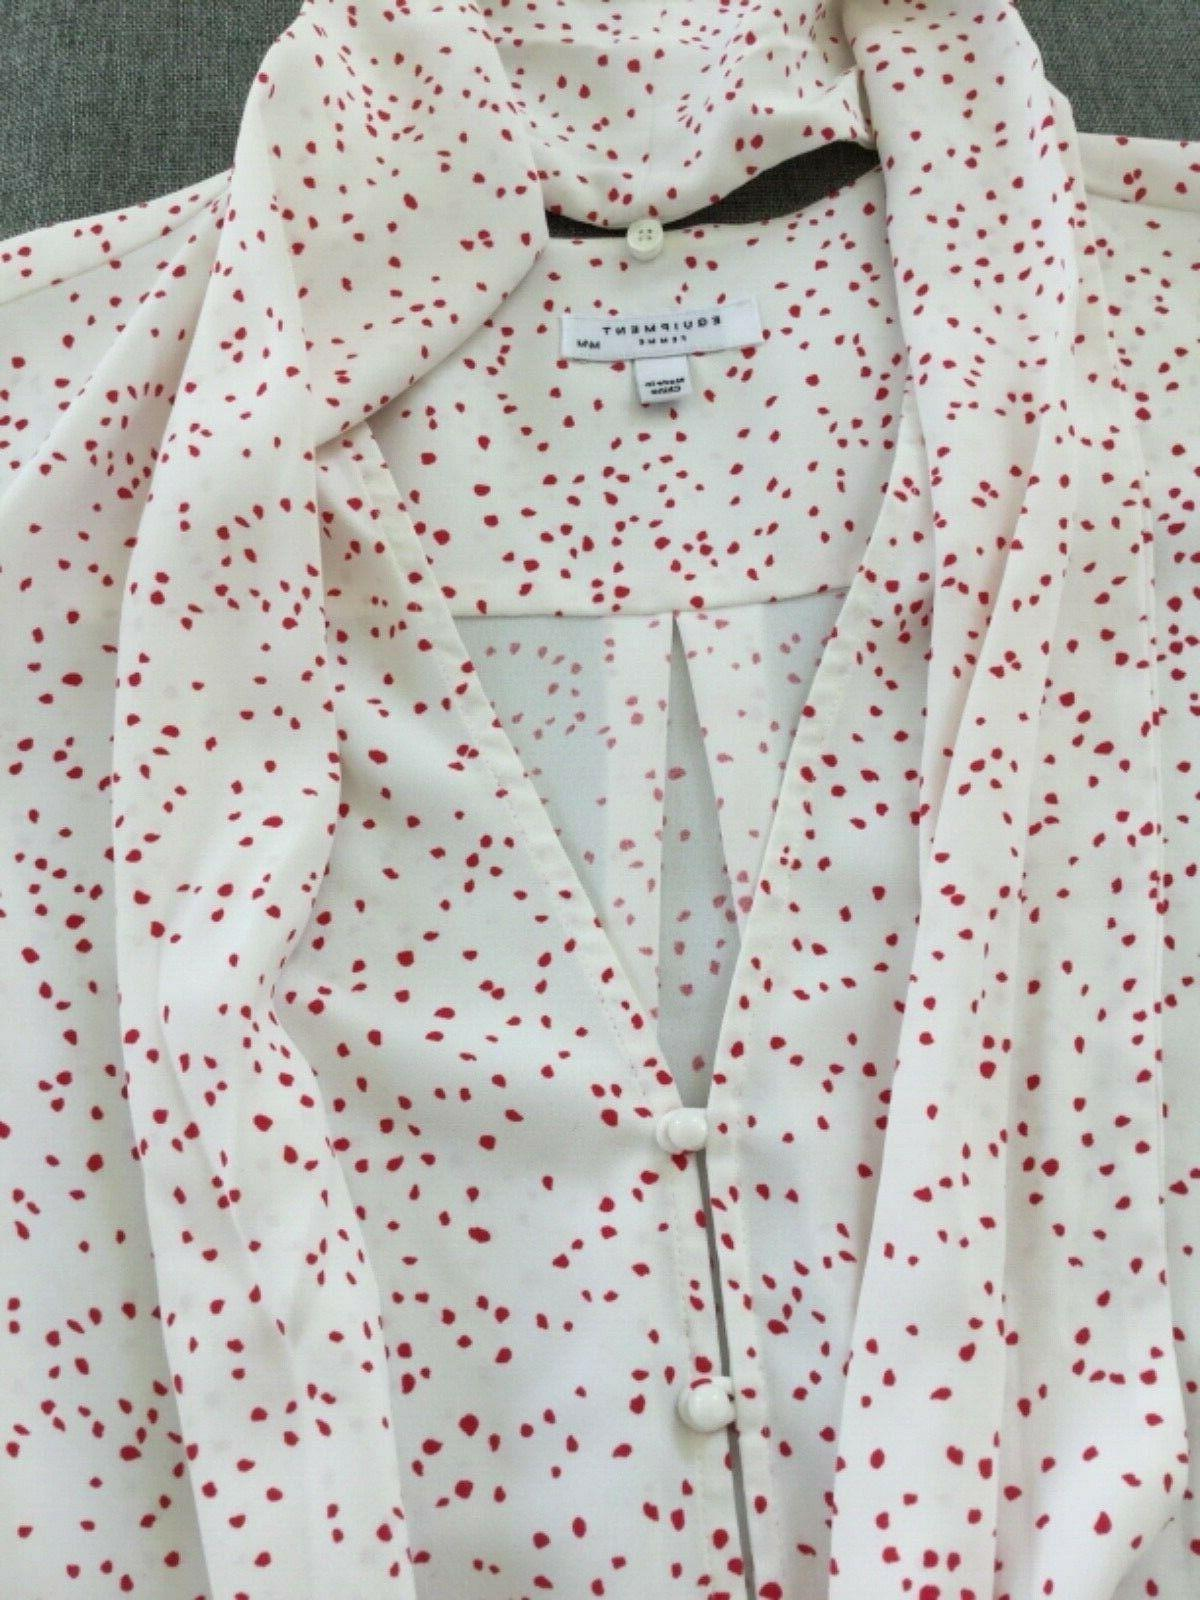 Equipment Haty Neck Printed Top Blouse White/Scarlet